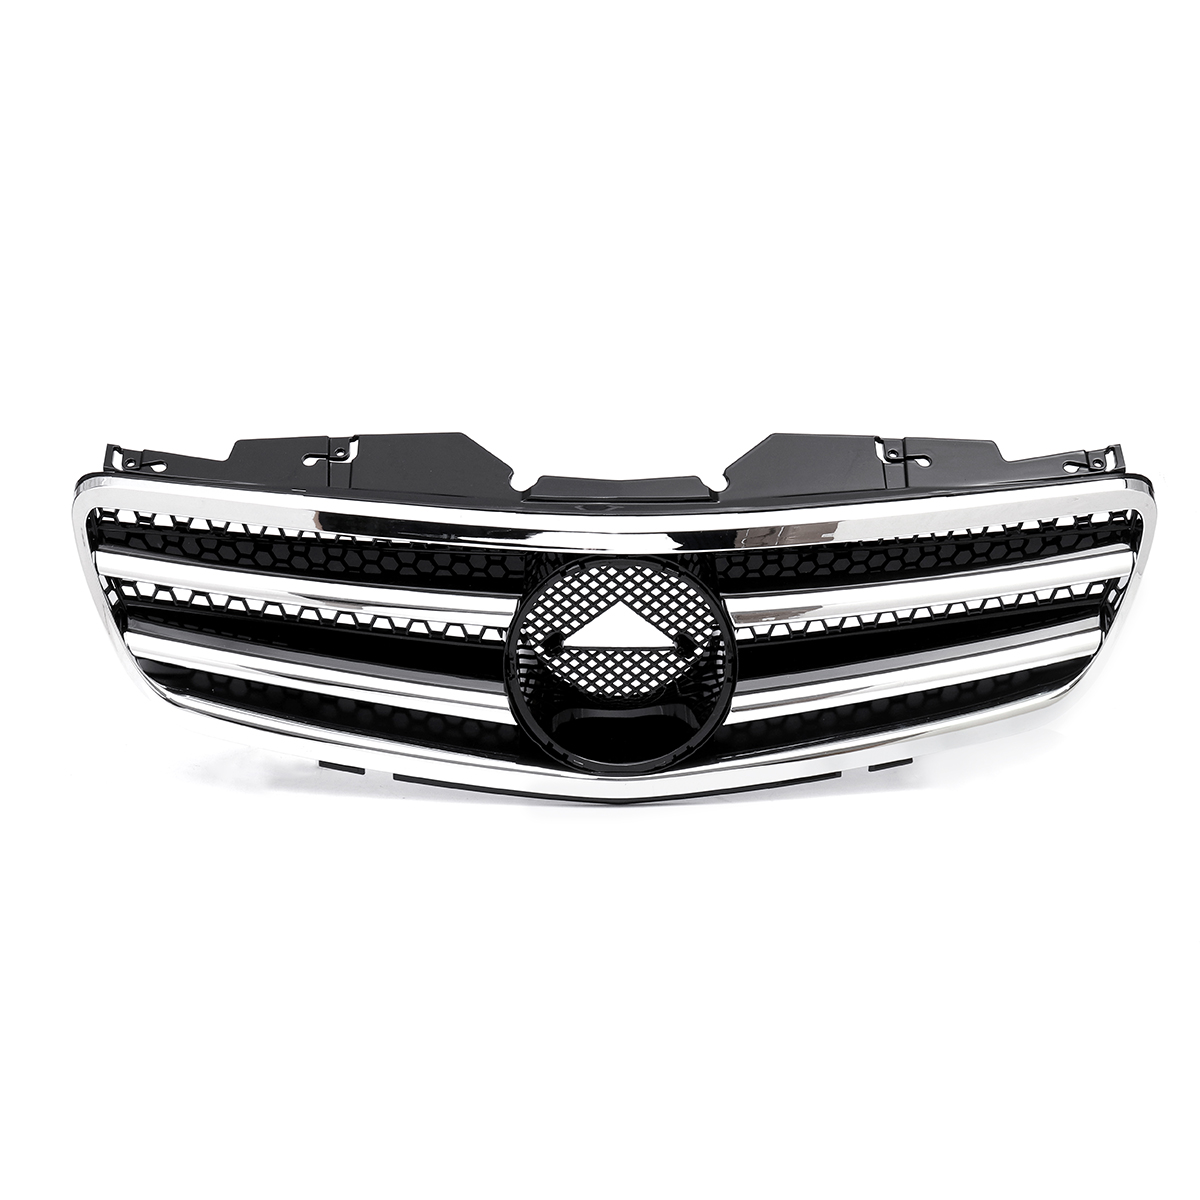 High Quality <font><b>R230</b></font> Car Front Bumper Grille Grill For <font><b>Mercedes</b></font> For Benz <font><b>SL</b></font> Class <font><b>R230</b></font> SL500 SL550 SL600 2003 2004 2005 2006 image